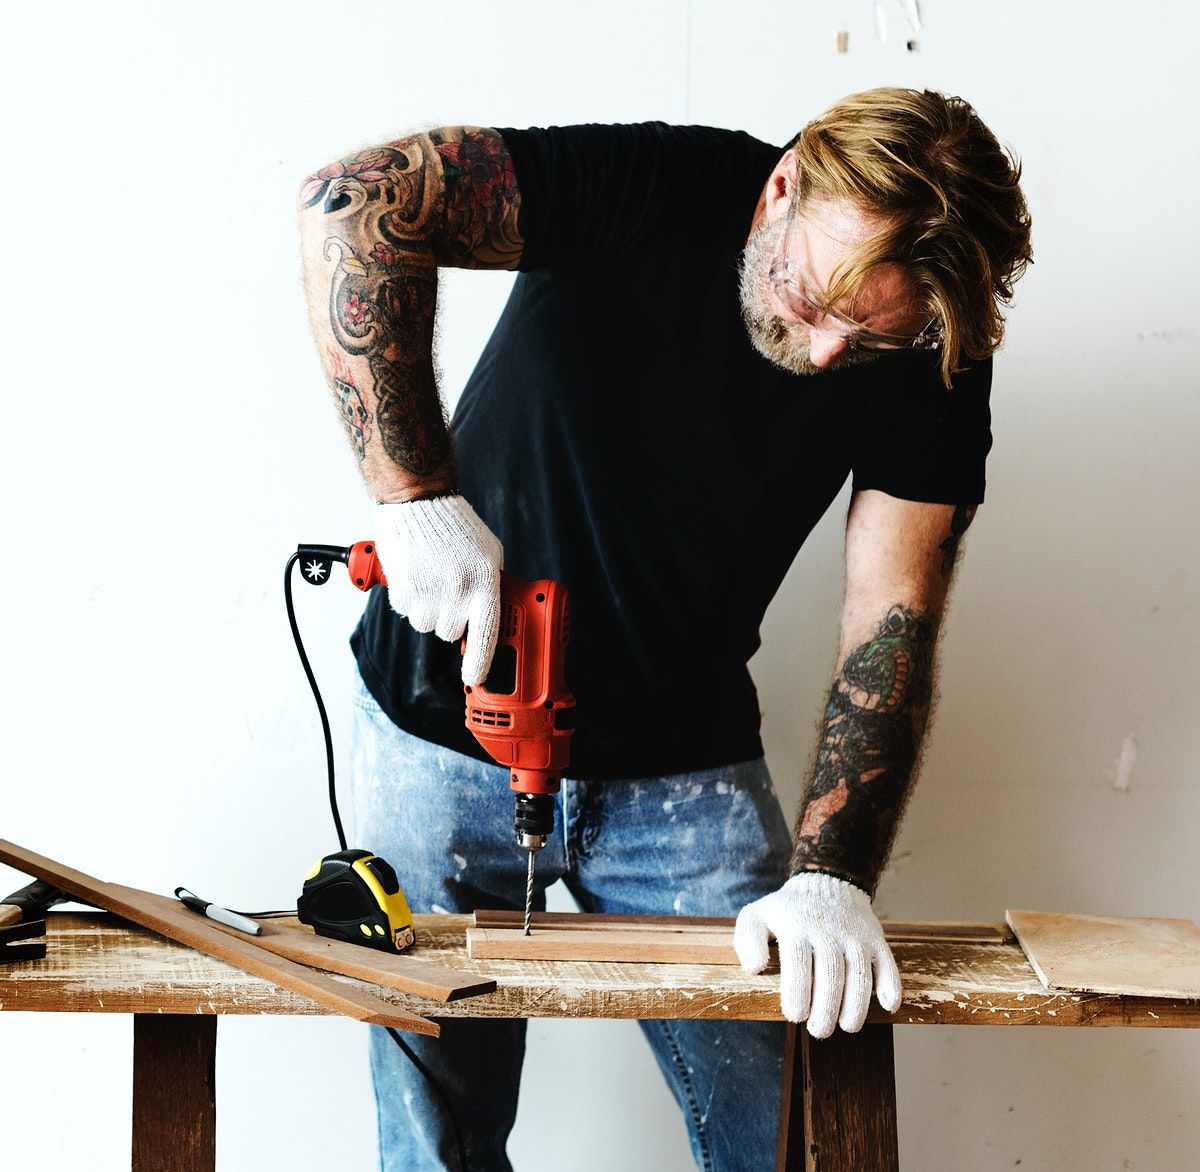 Download Premium Image Of Constractor Handyman Working And Using